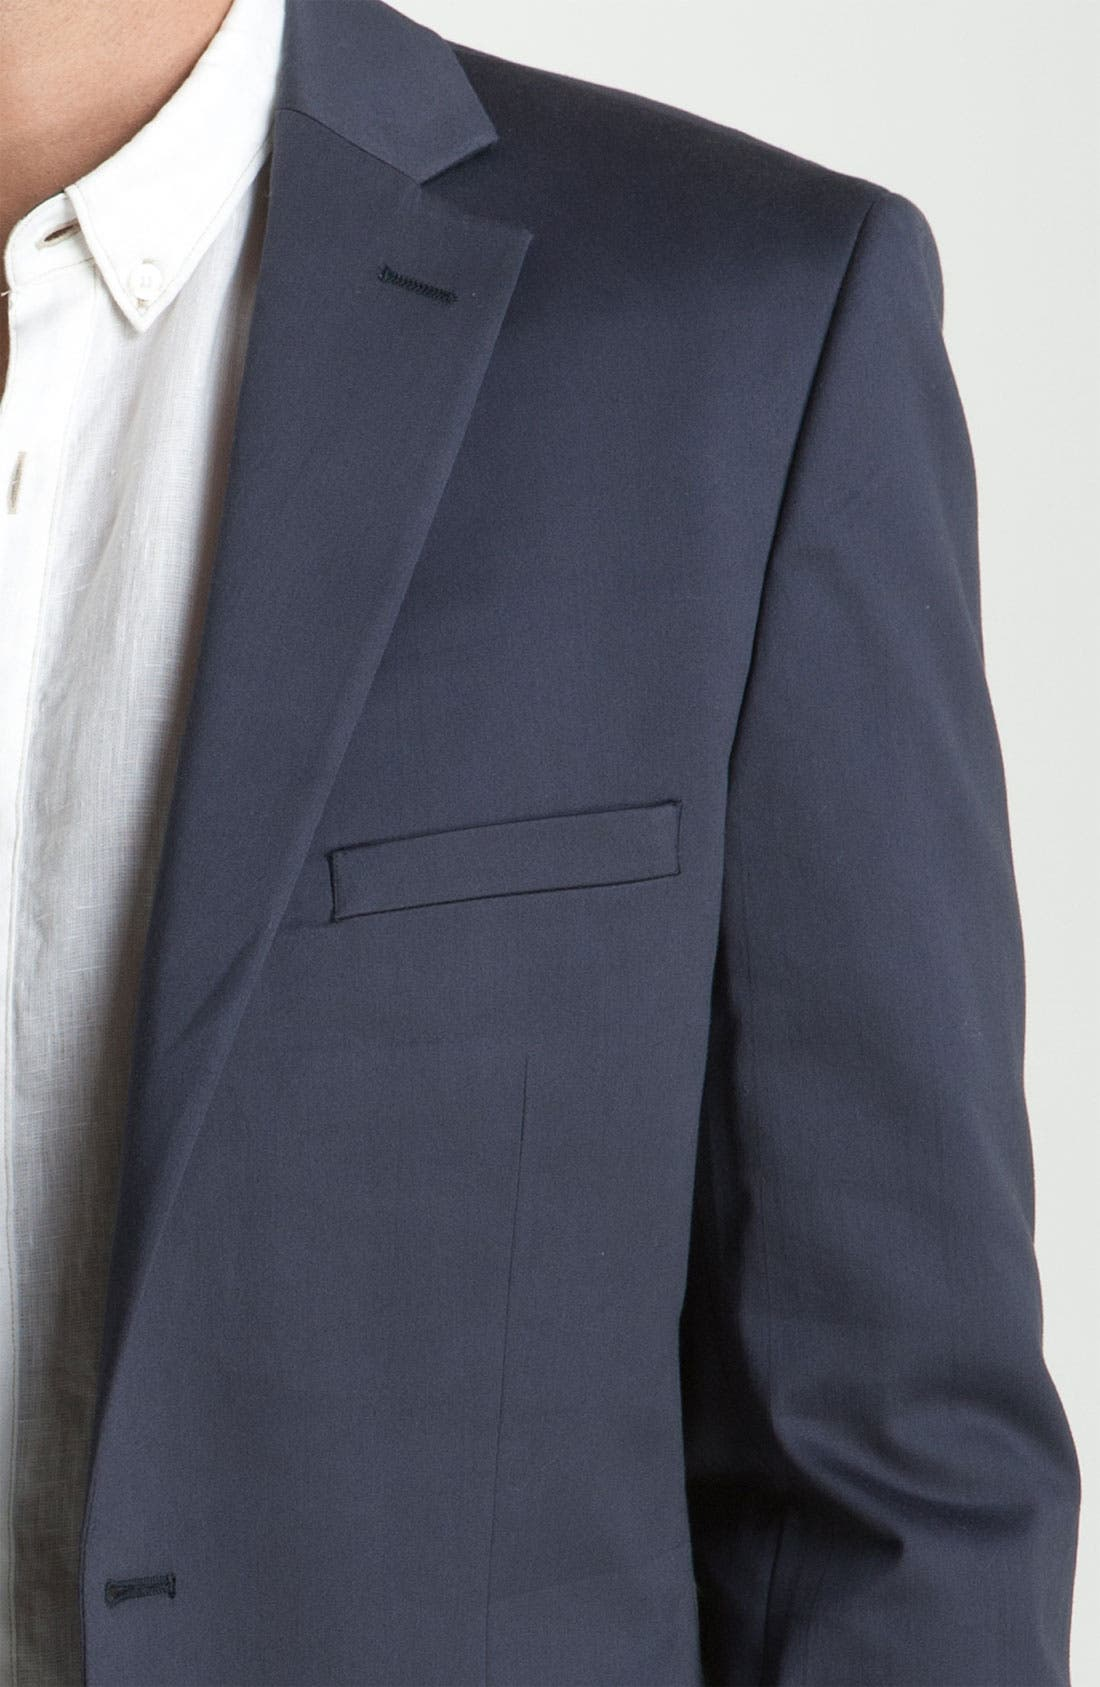 Alternate Image 3  - Calibrate Trim Fit Cotton Sportcoat